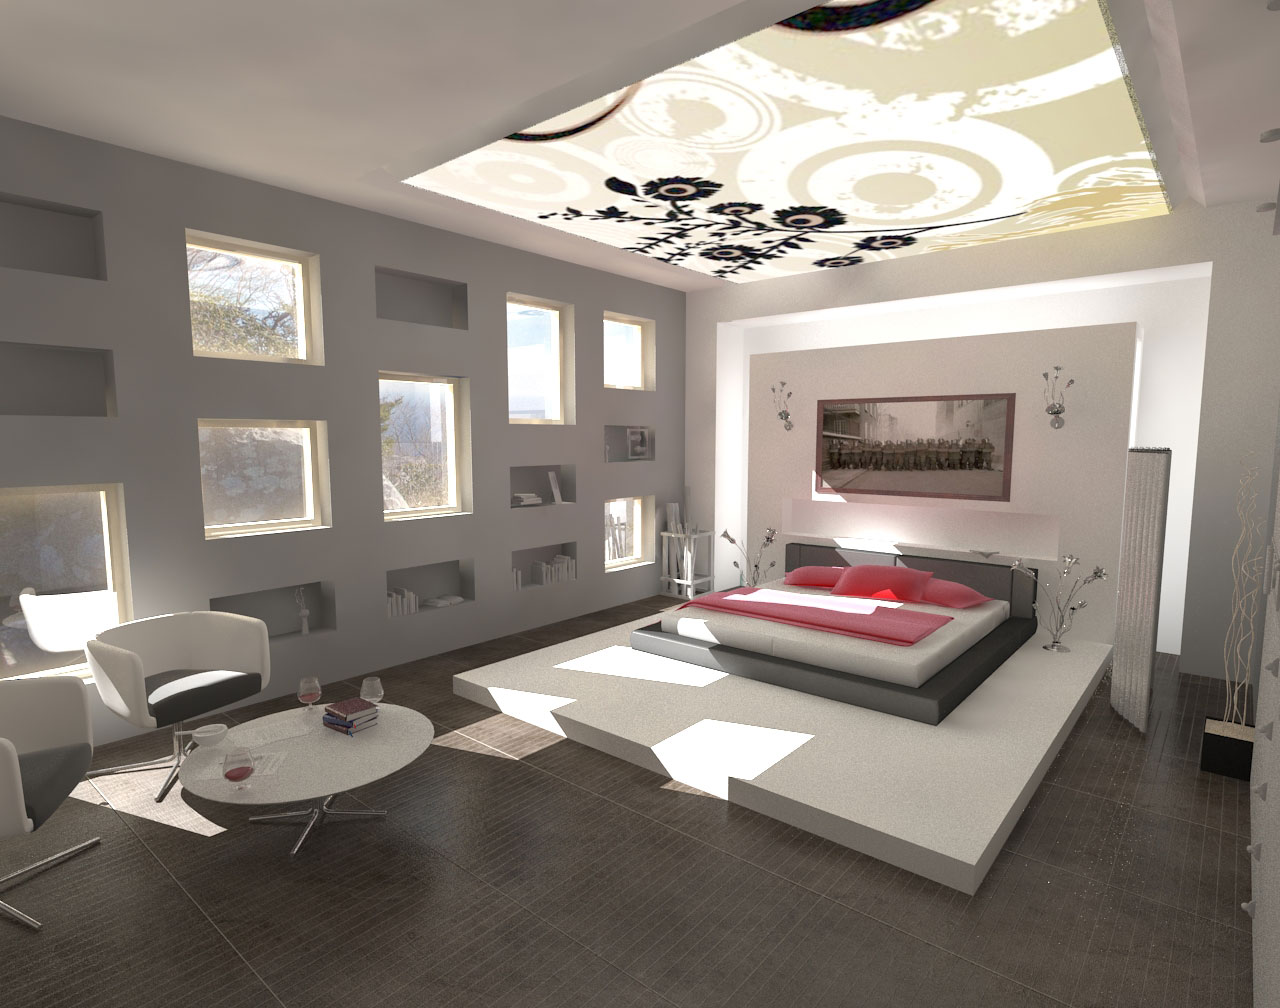 Interior design ideas fantastic modern bedroom paints for Awesome interior design